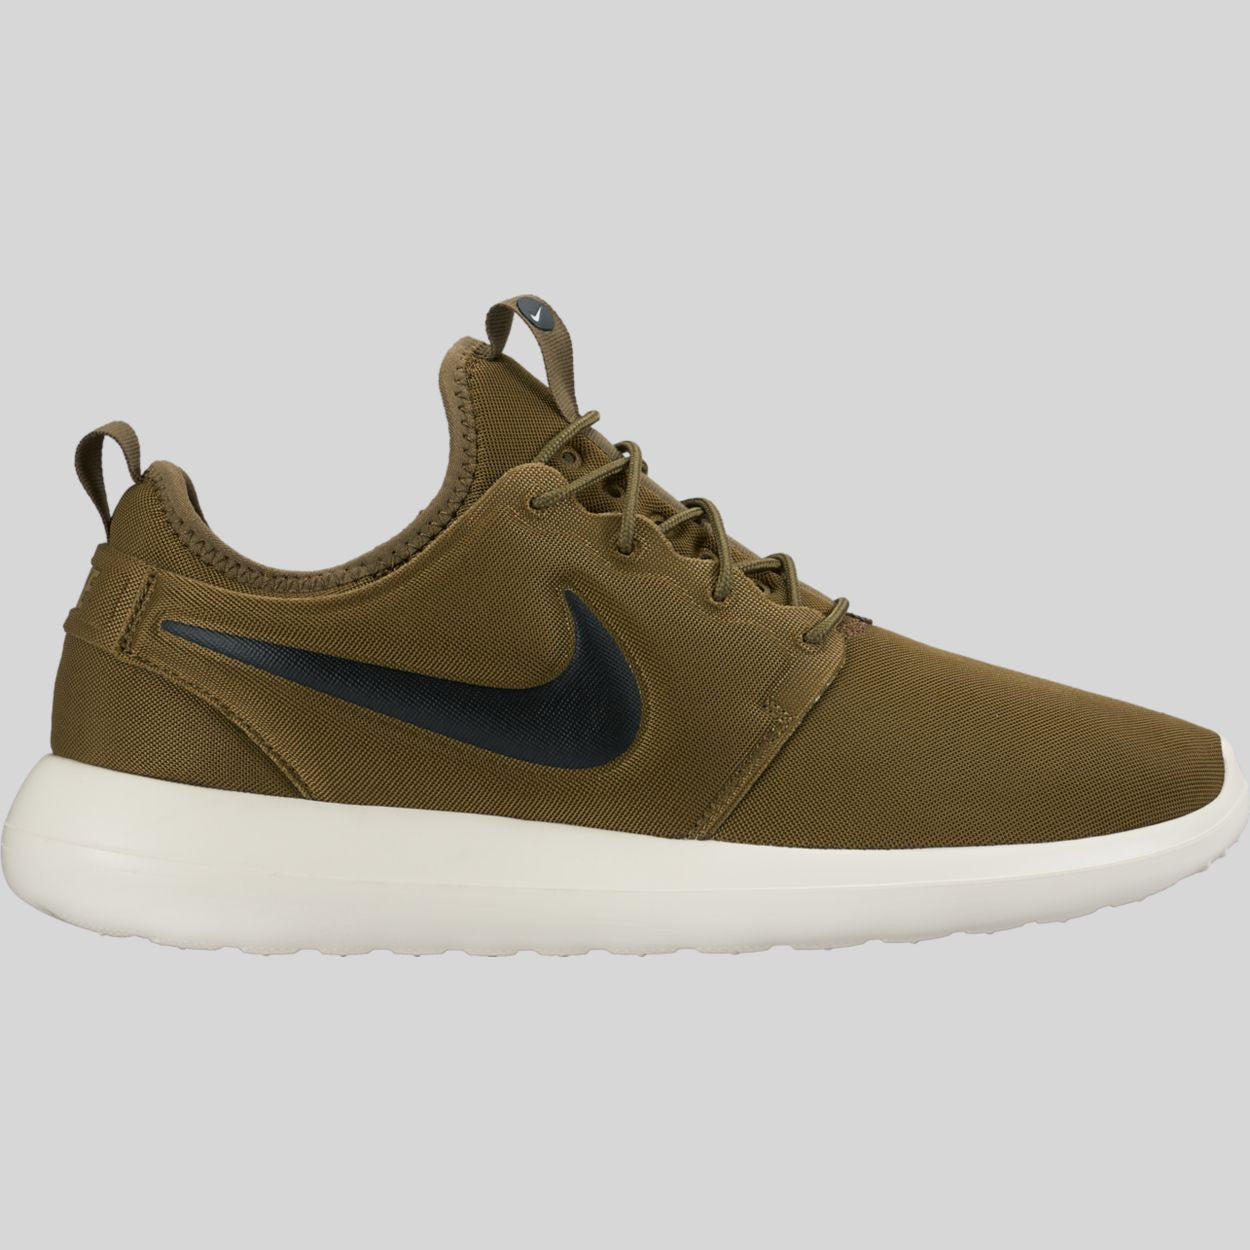 best loved 7056e cb584 amazon 1bf4 jesewitz nike air max thea print rose weiß 36 40 schuhe für  damen 370d0 f02c3  ireland snipes nike roshe one hyperfuse b3d3a 25d5e